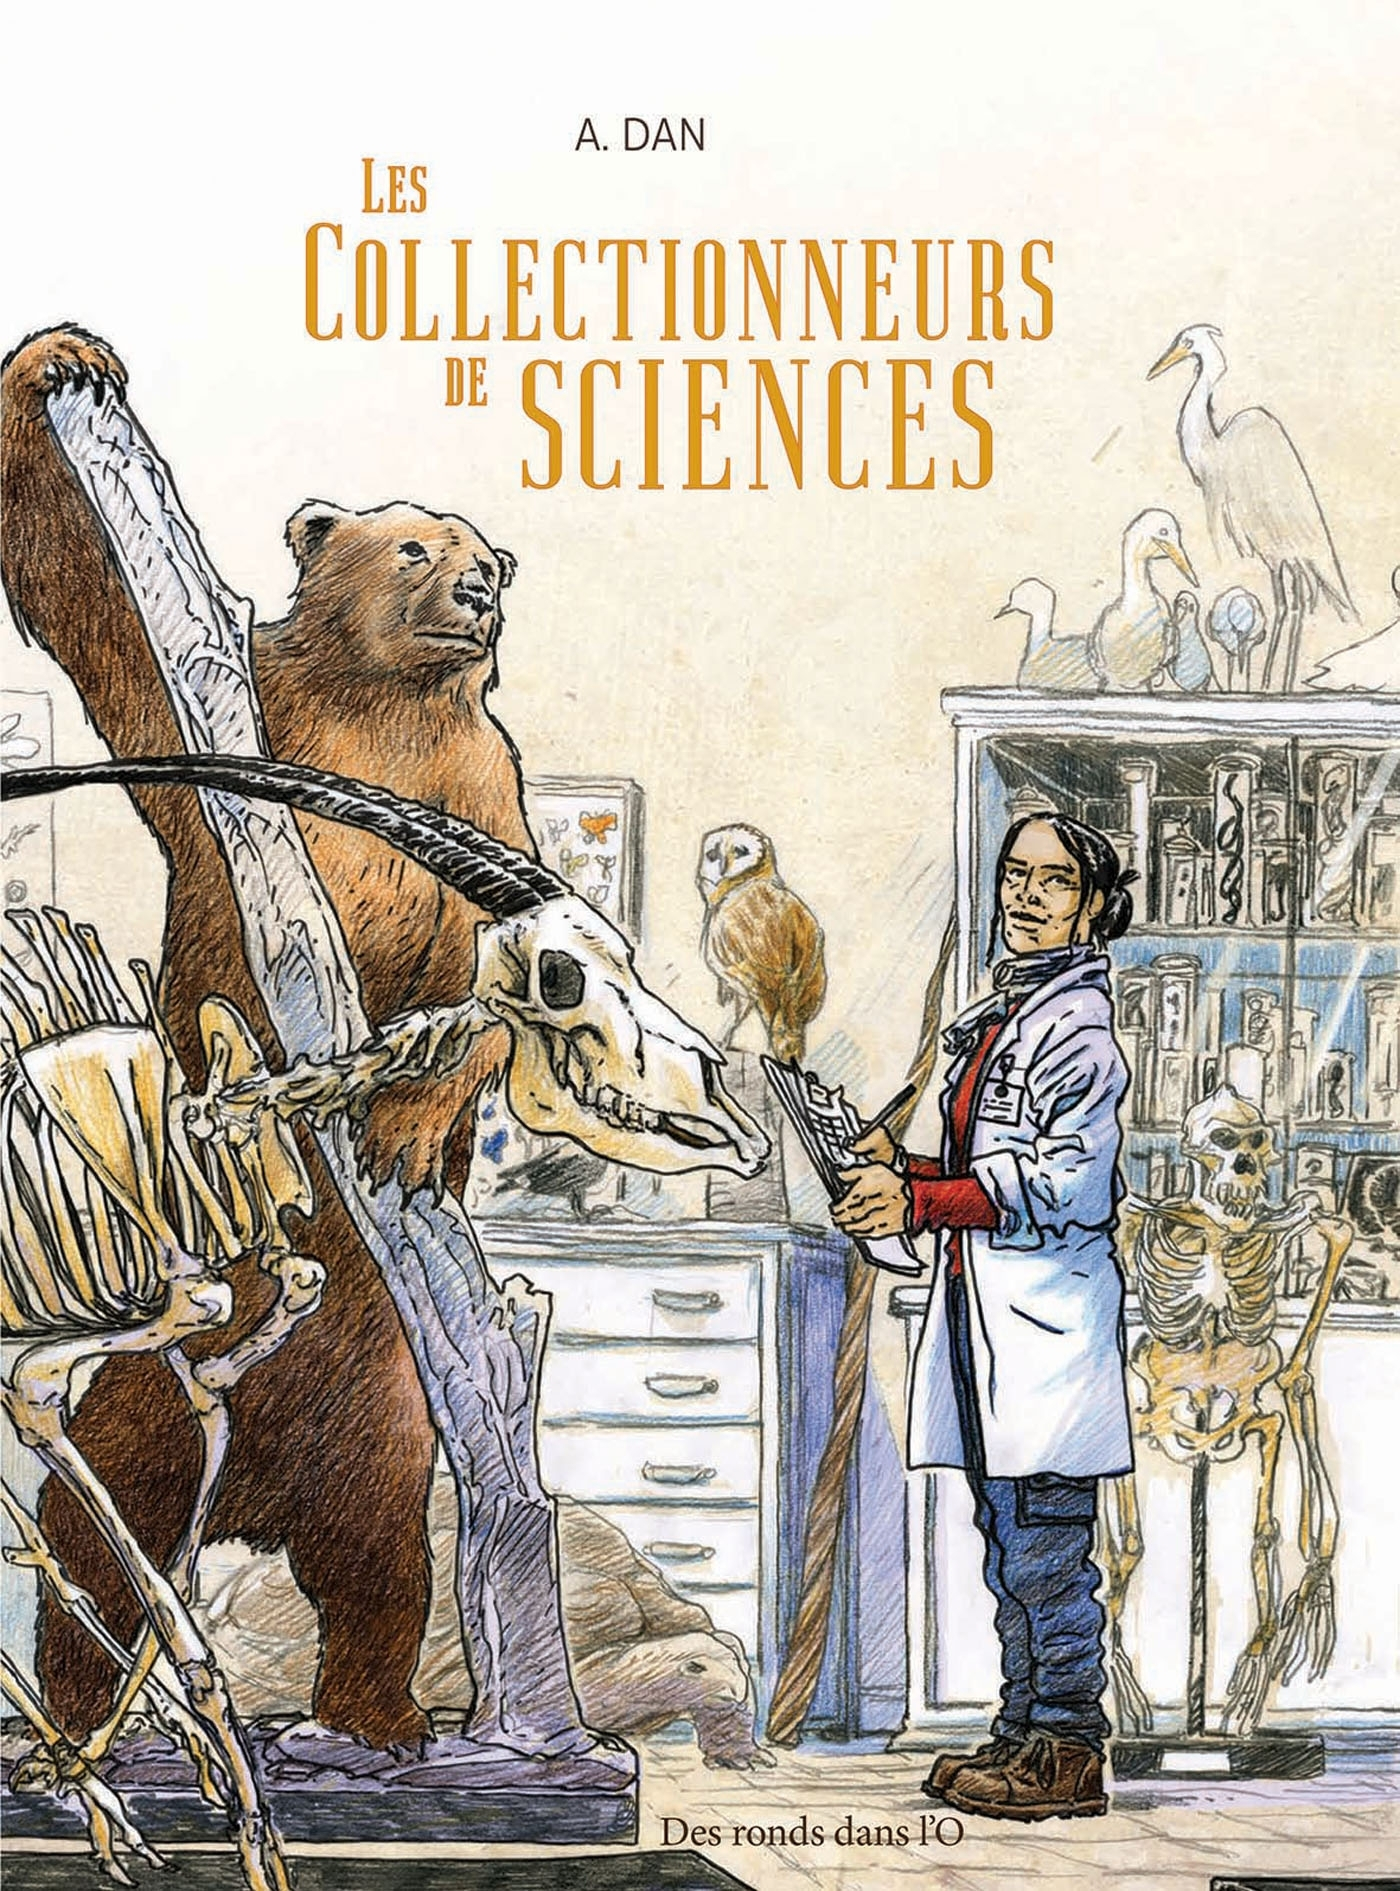 LES COLLECTIONNEURS DE SCIENCES